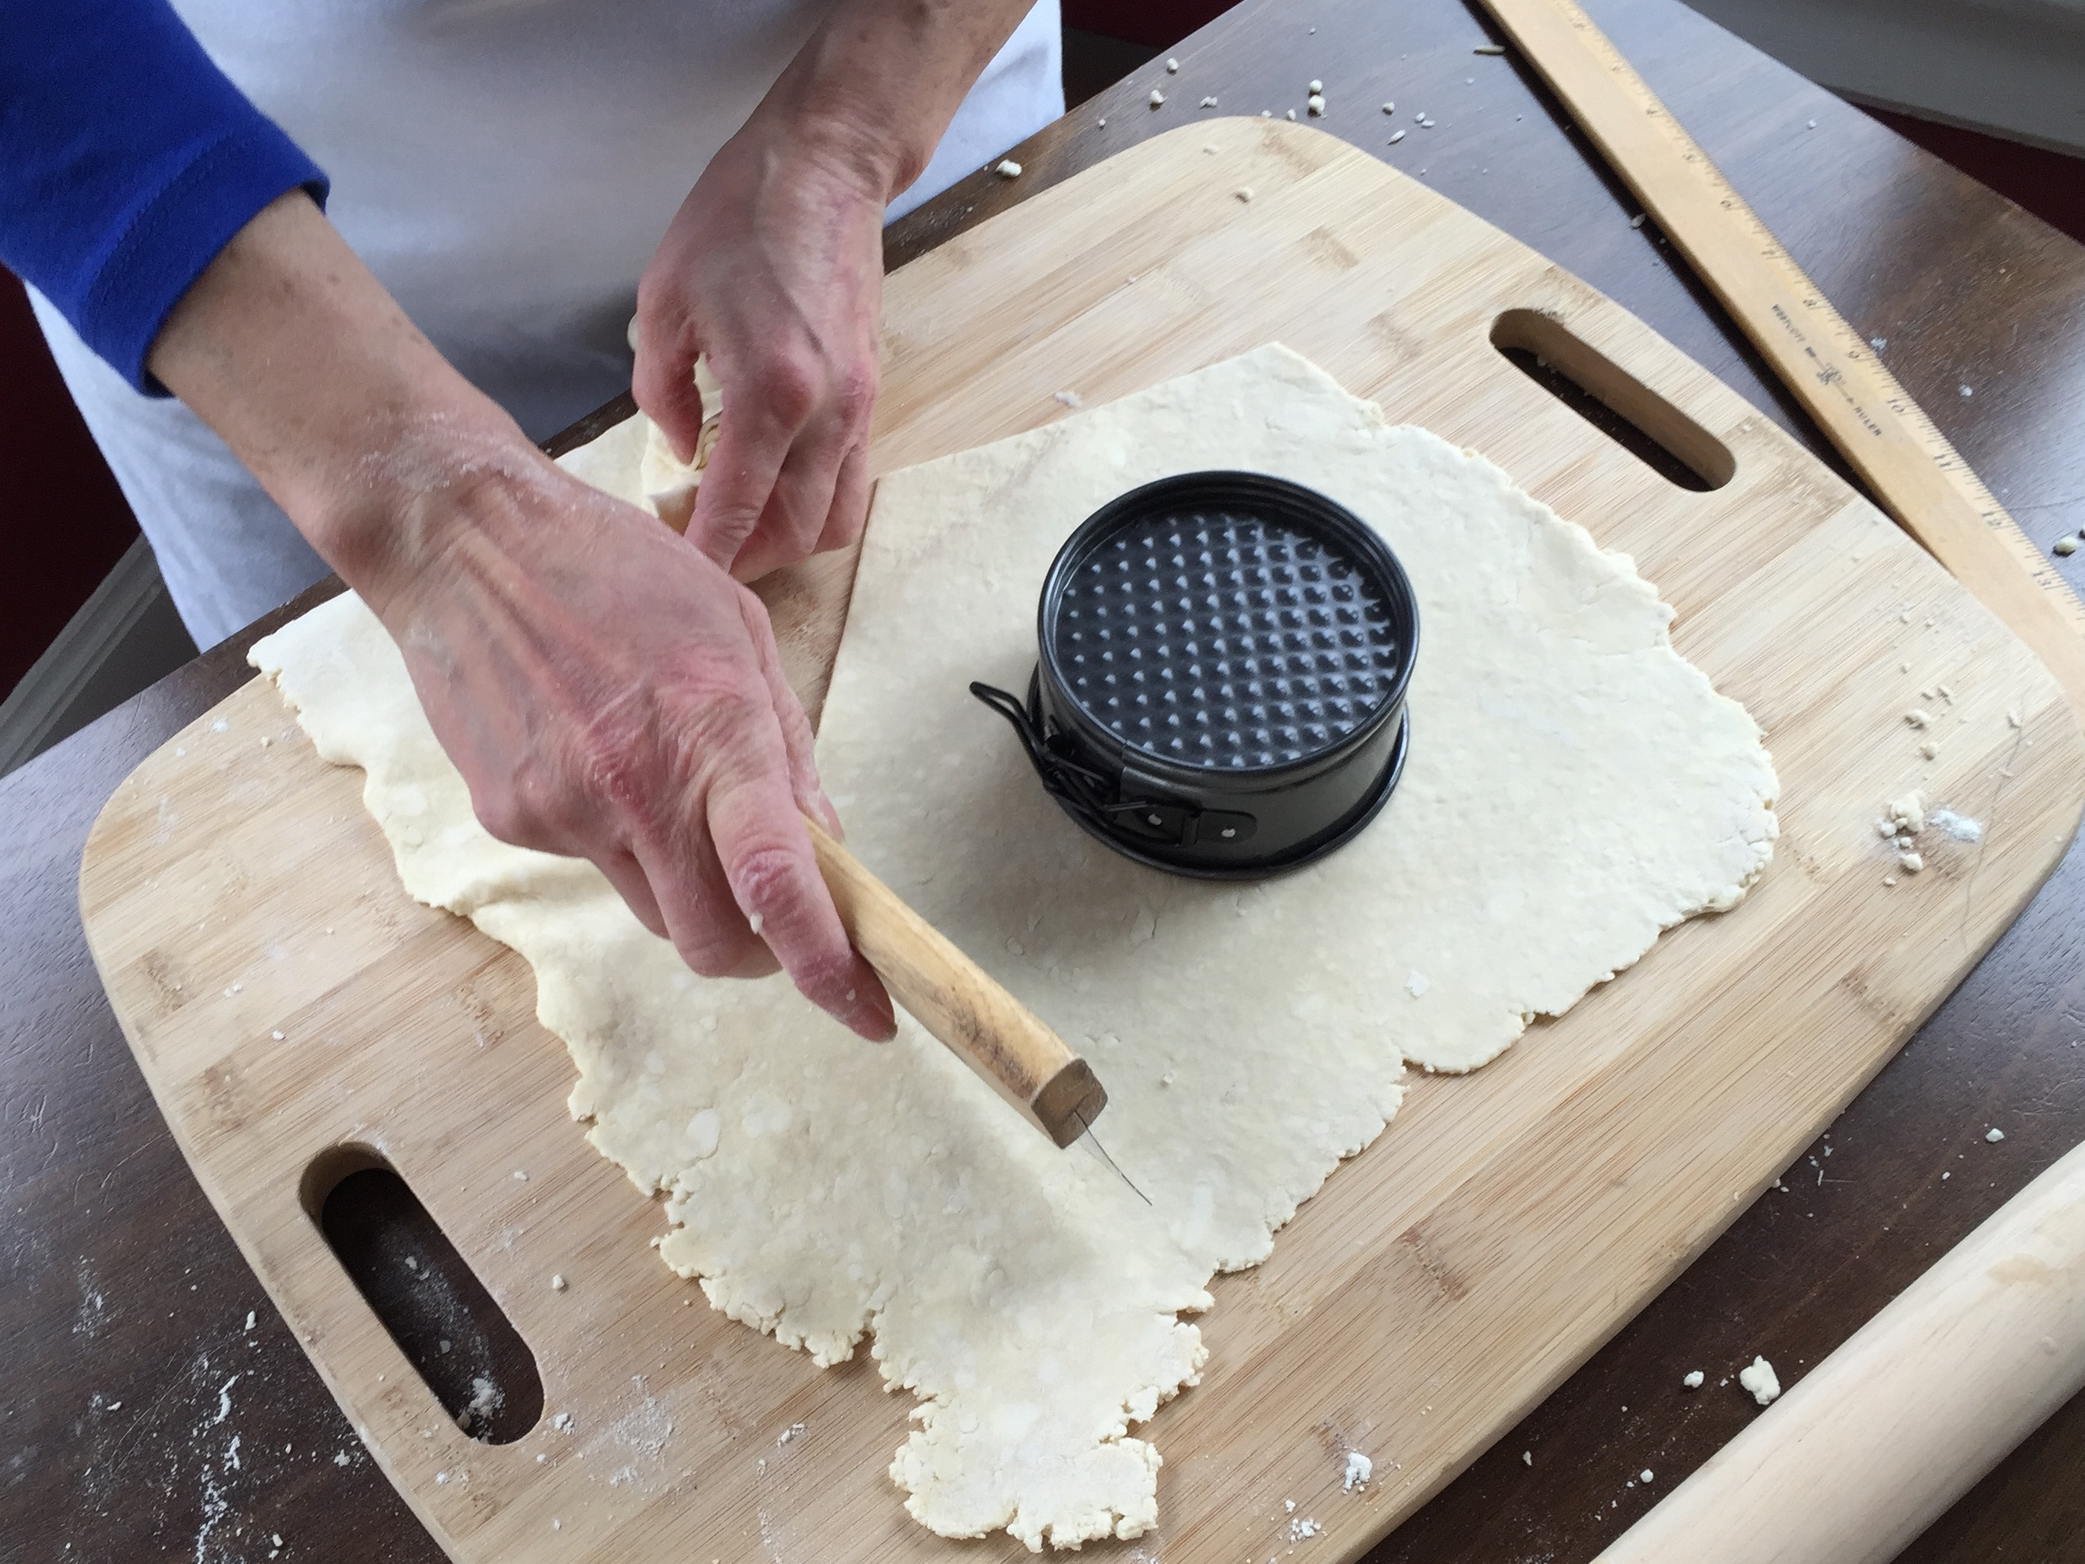 Cutting the pate brisee to fit the springform pan